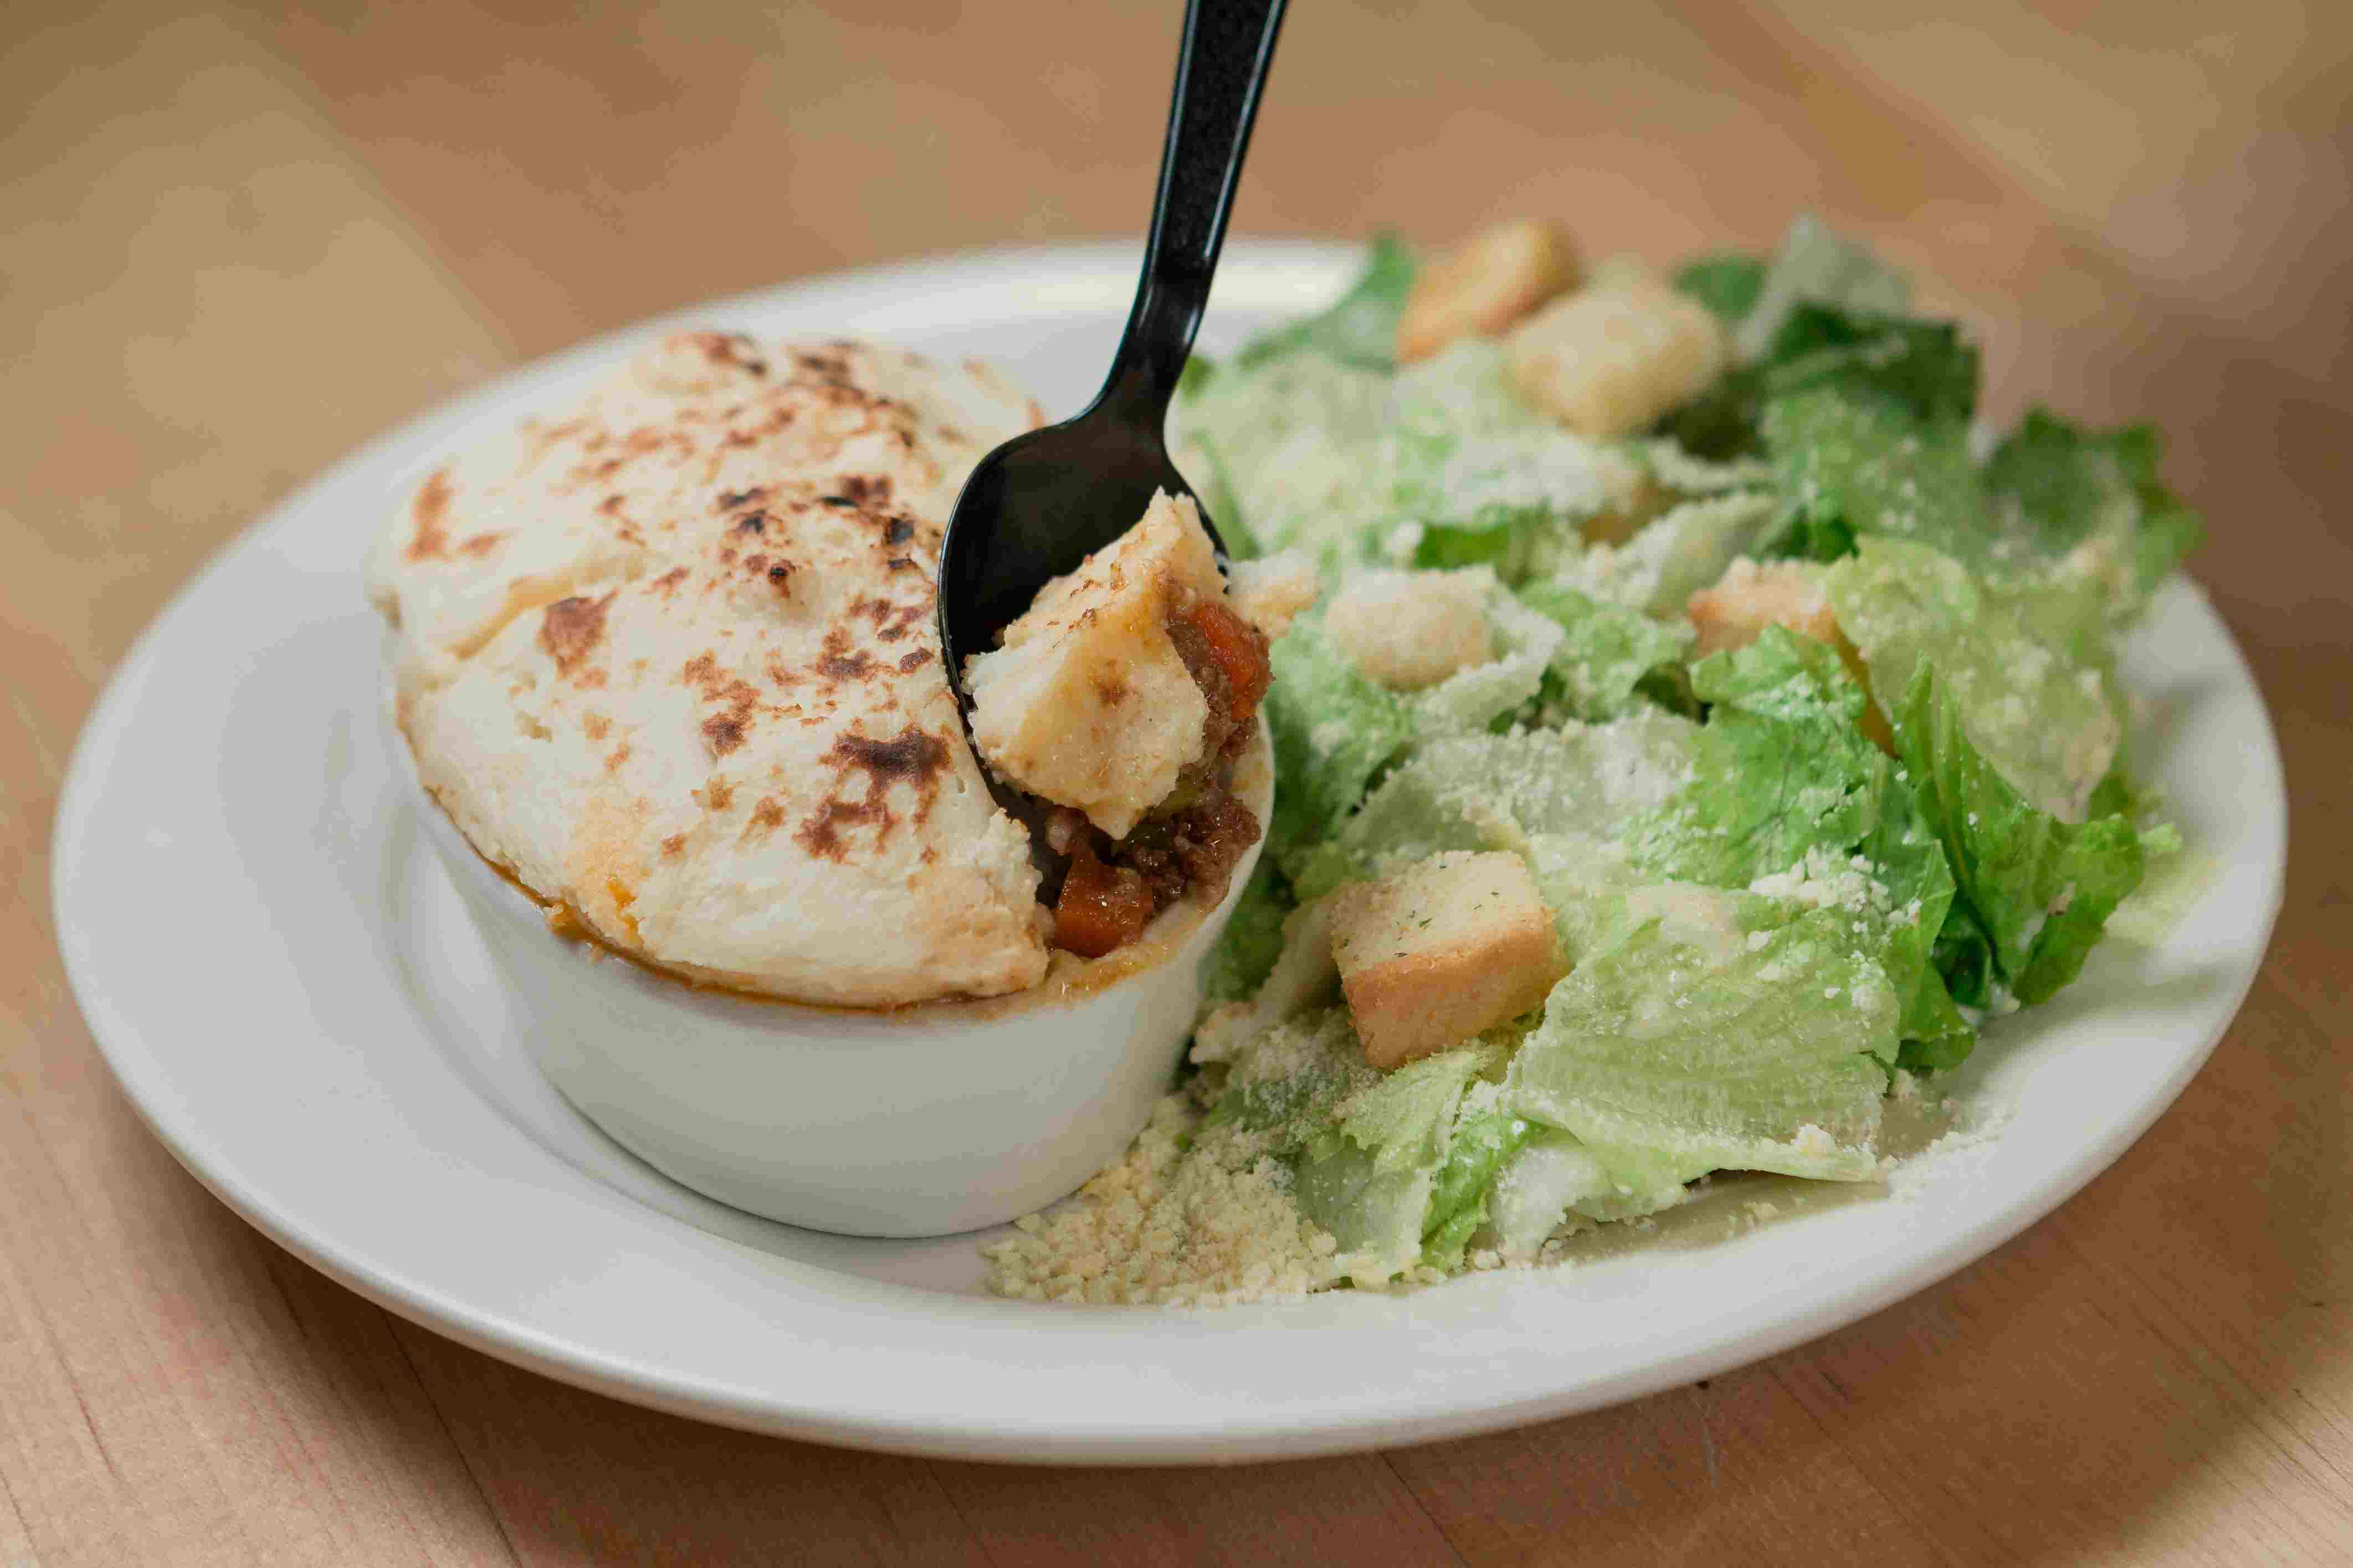 Airport Food Options That Are More Tempting Than a Cinnabon